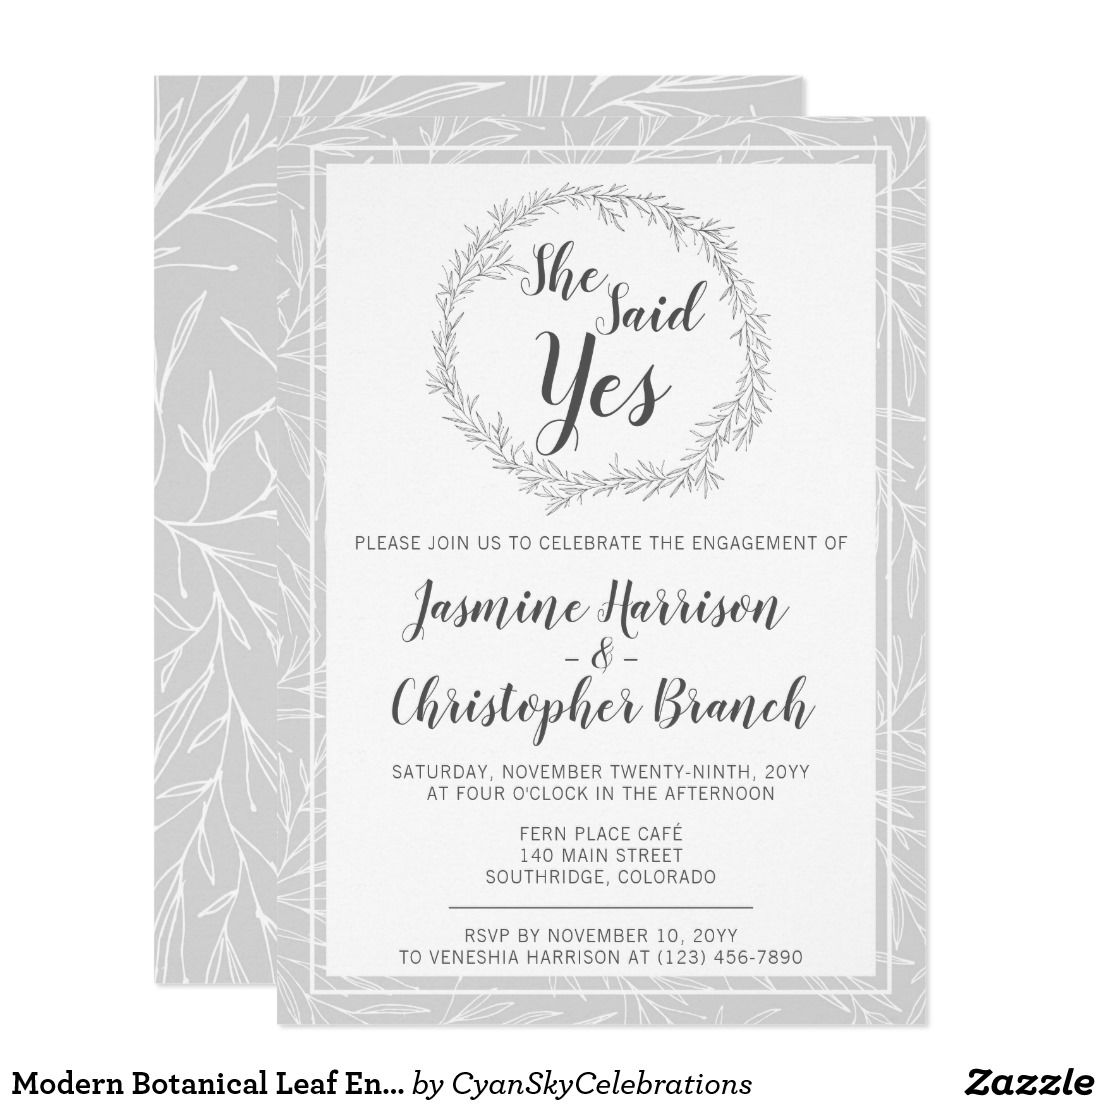 Modern Botanical Leaf Engagement Party Invitation | Silver Willow ...